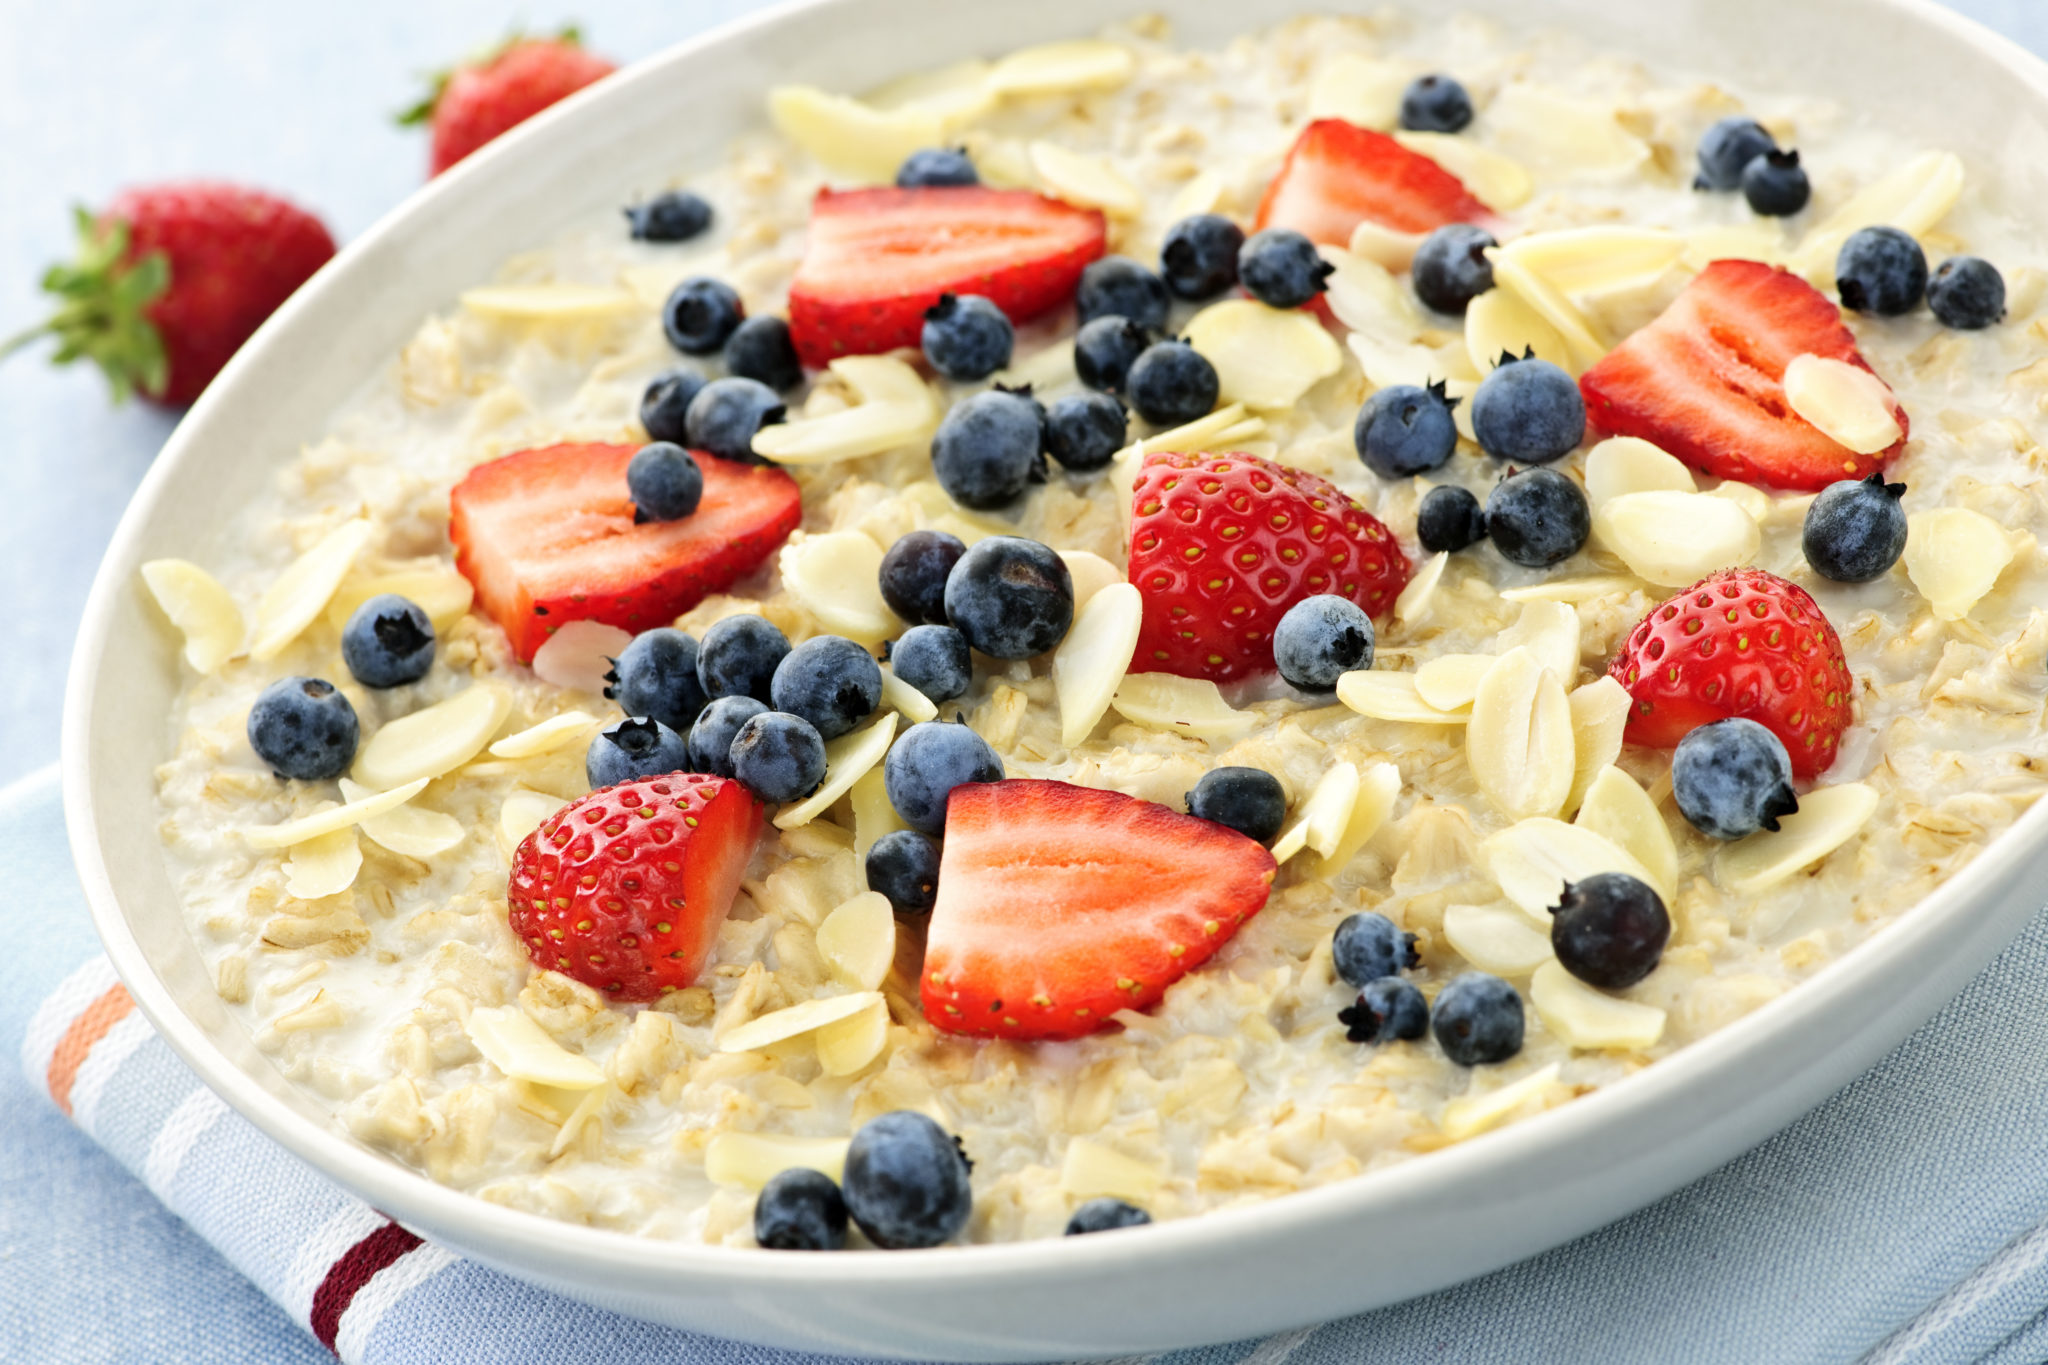 Oatmeal breakfast cereal with berries